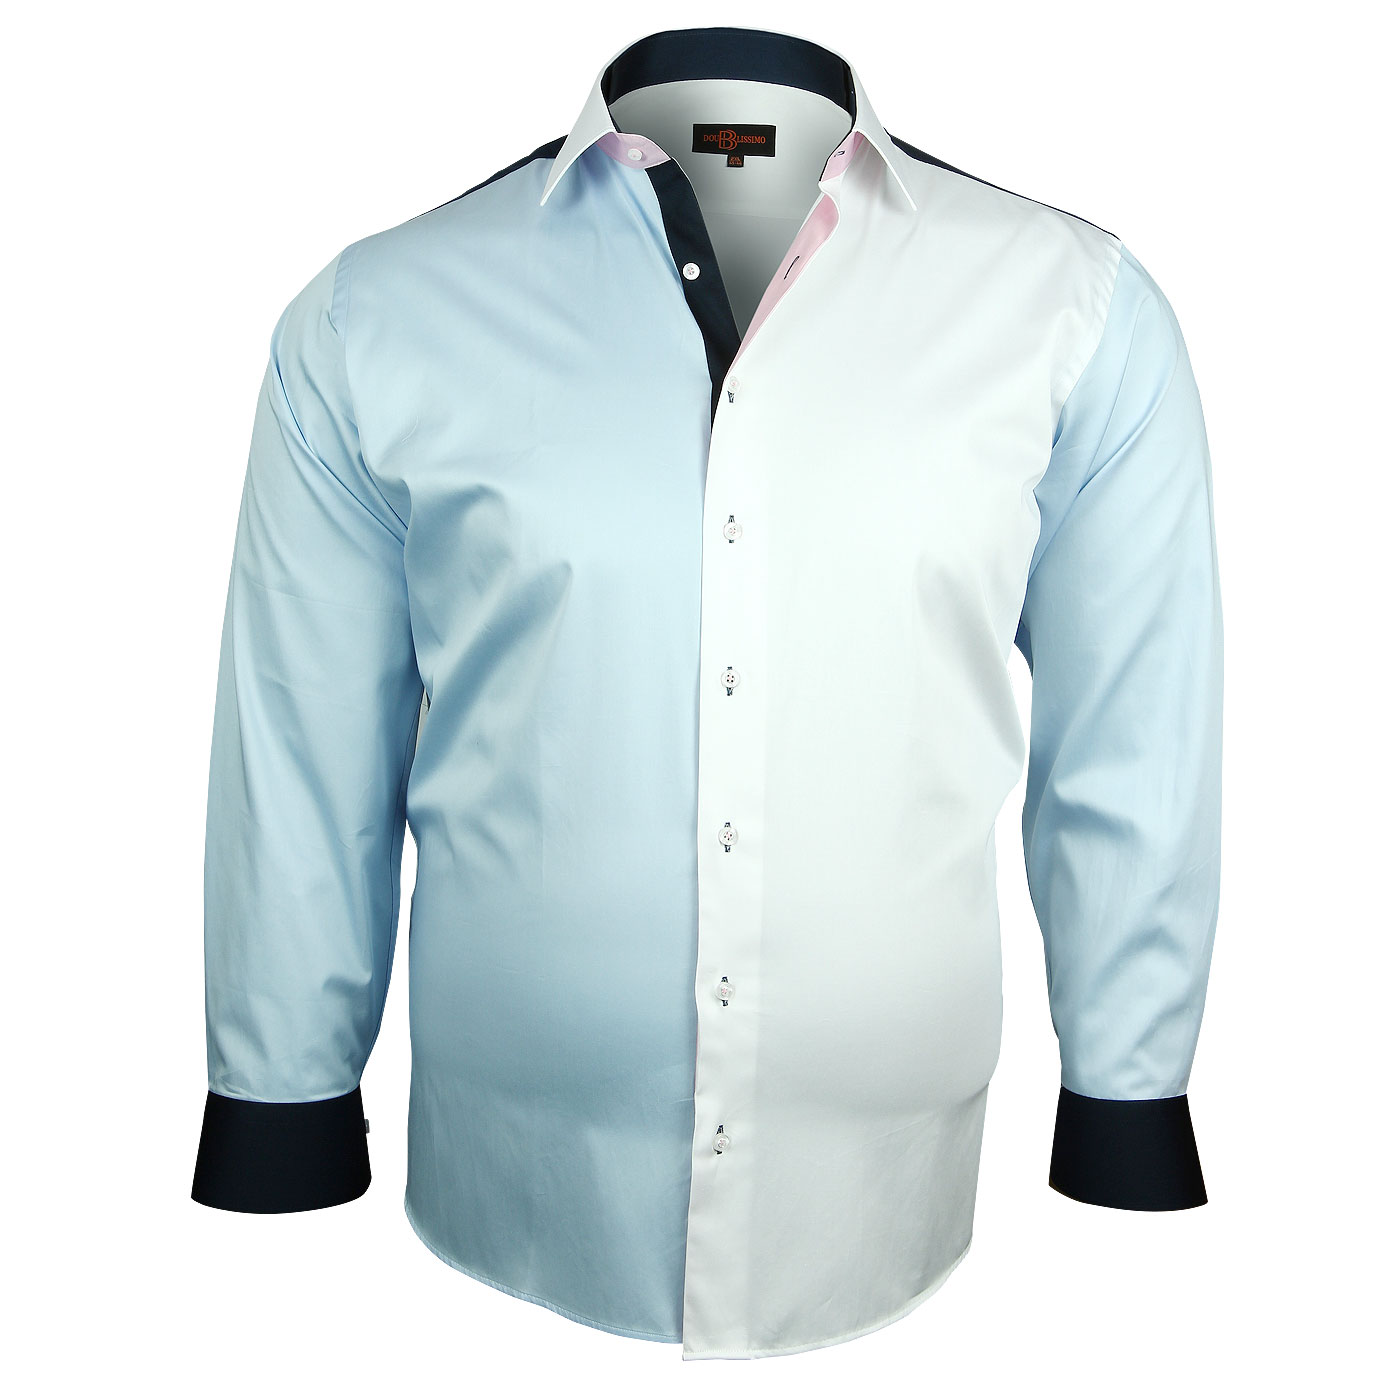 Shirt size, sales of men's shirt: Webmenshirts